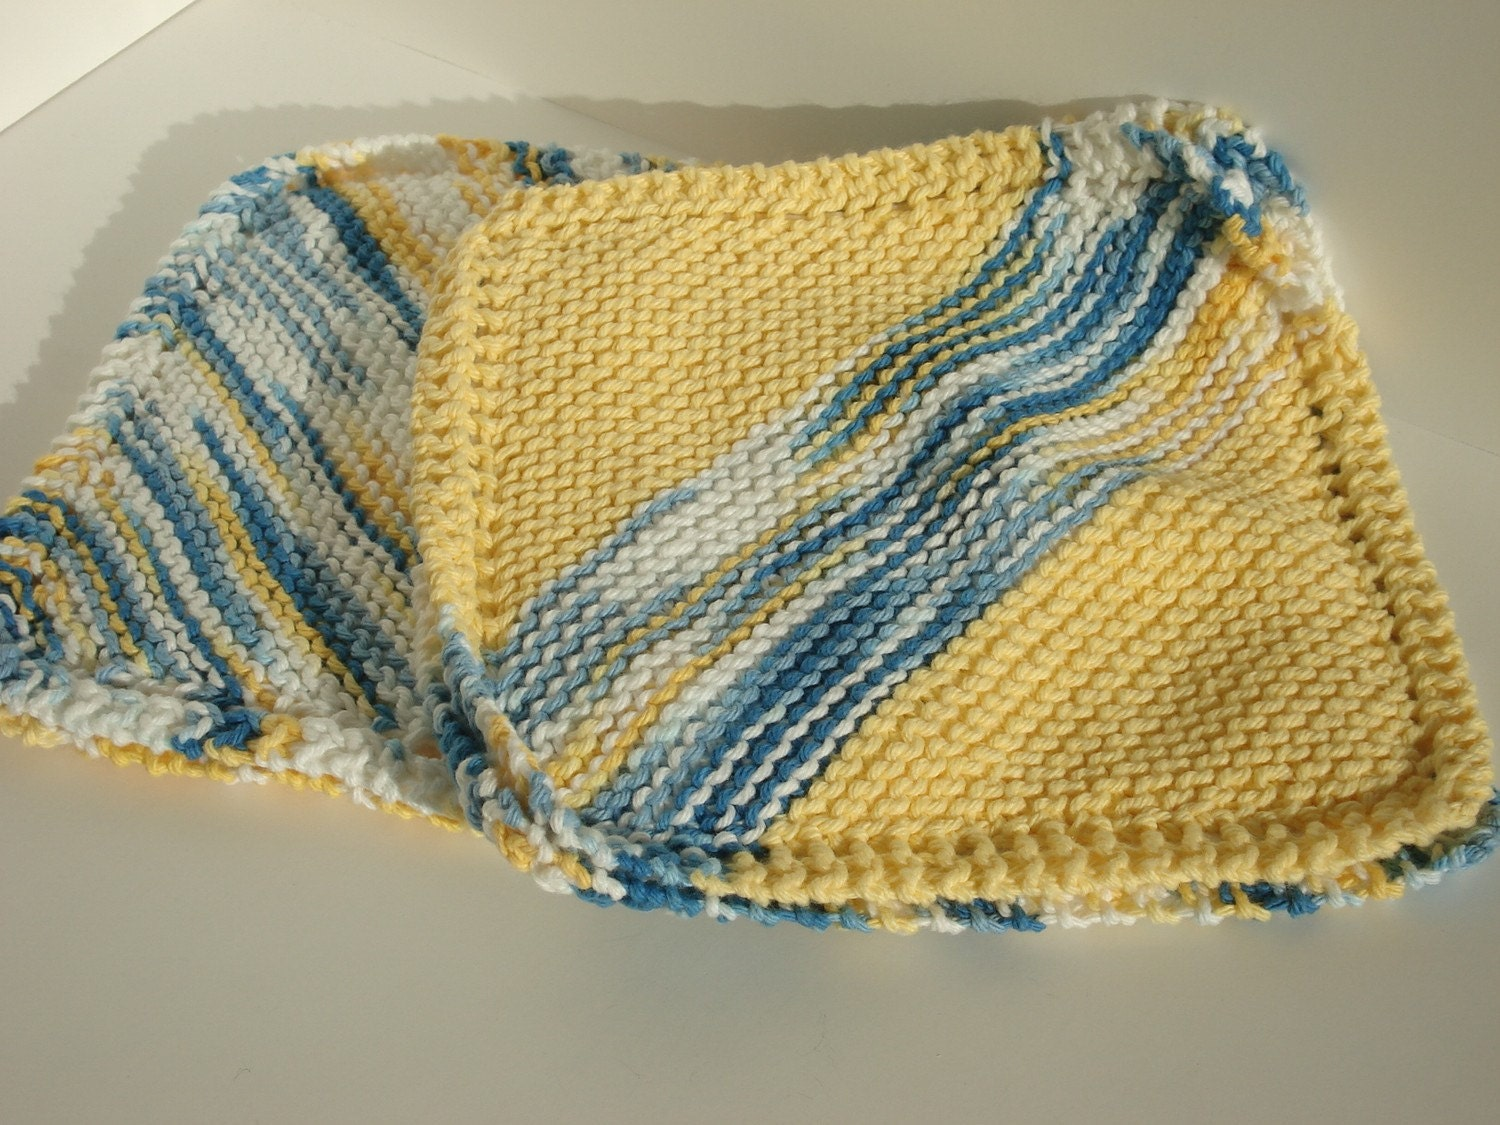 Potholder Trivet Set in Blue & Yellow